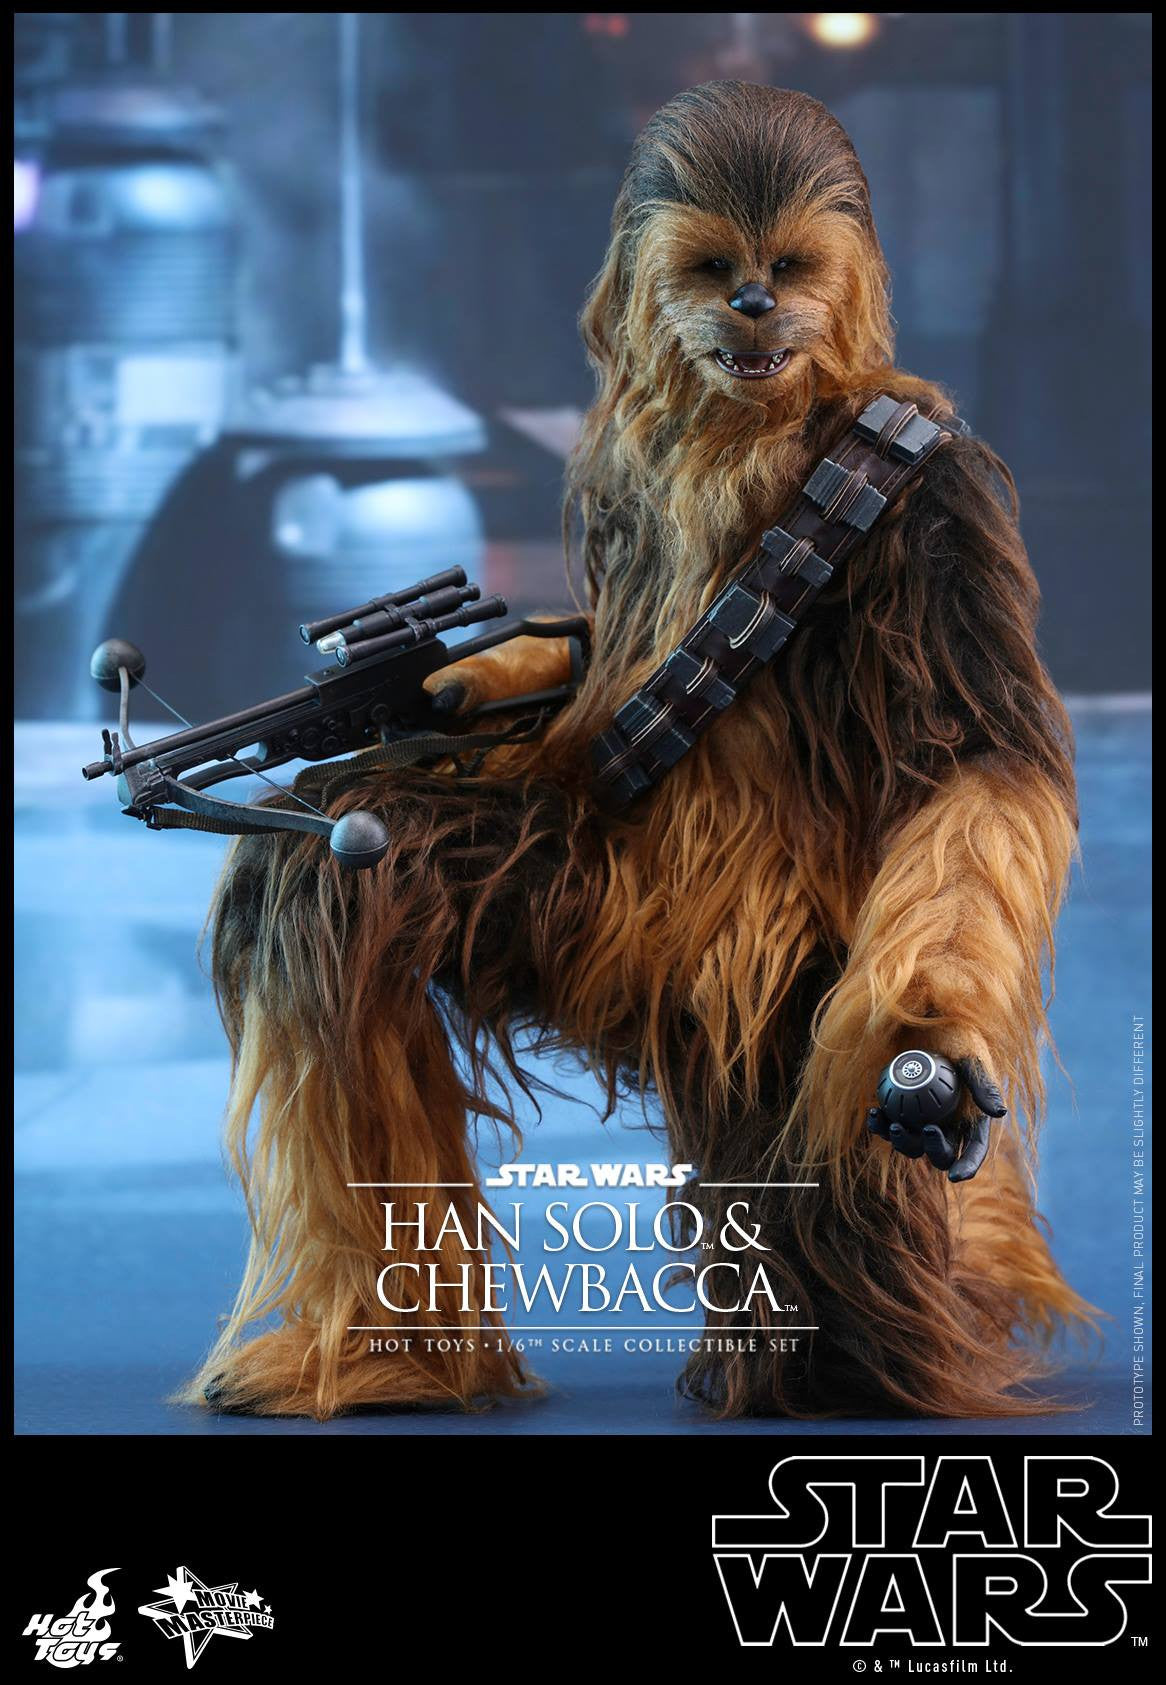 Hot Toys - MMS376 - Star Wars: The Force Awakens - Han Solo & Chewbacca Set - Marvelous Toys - 6